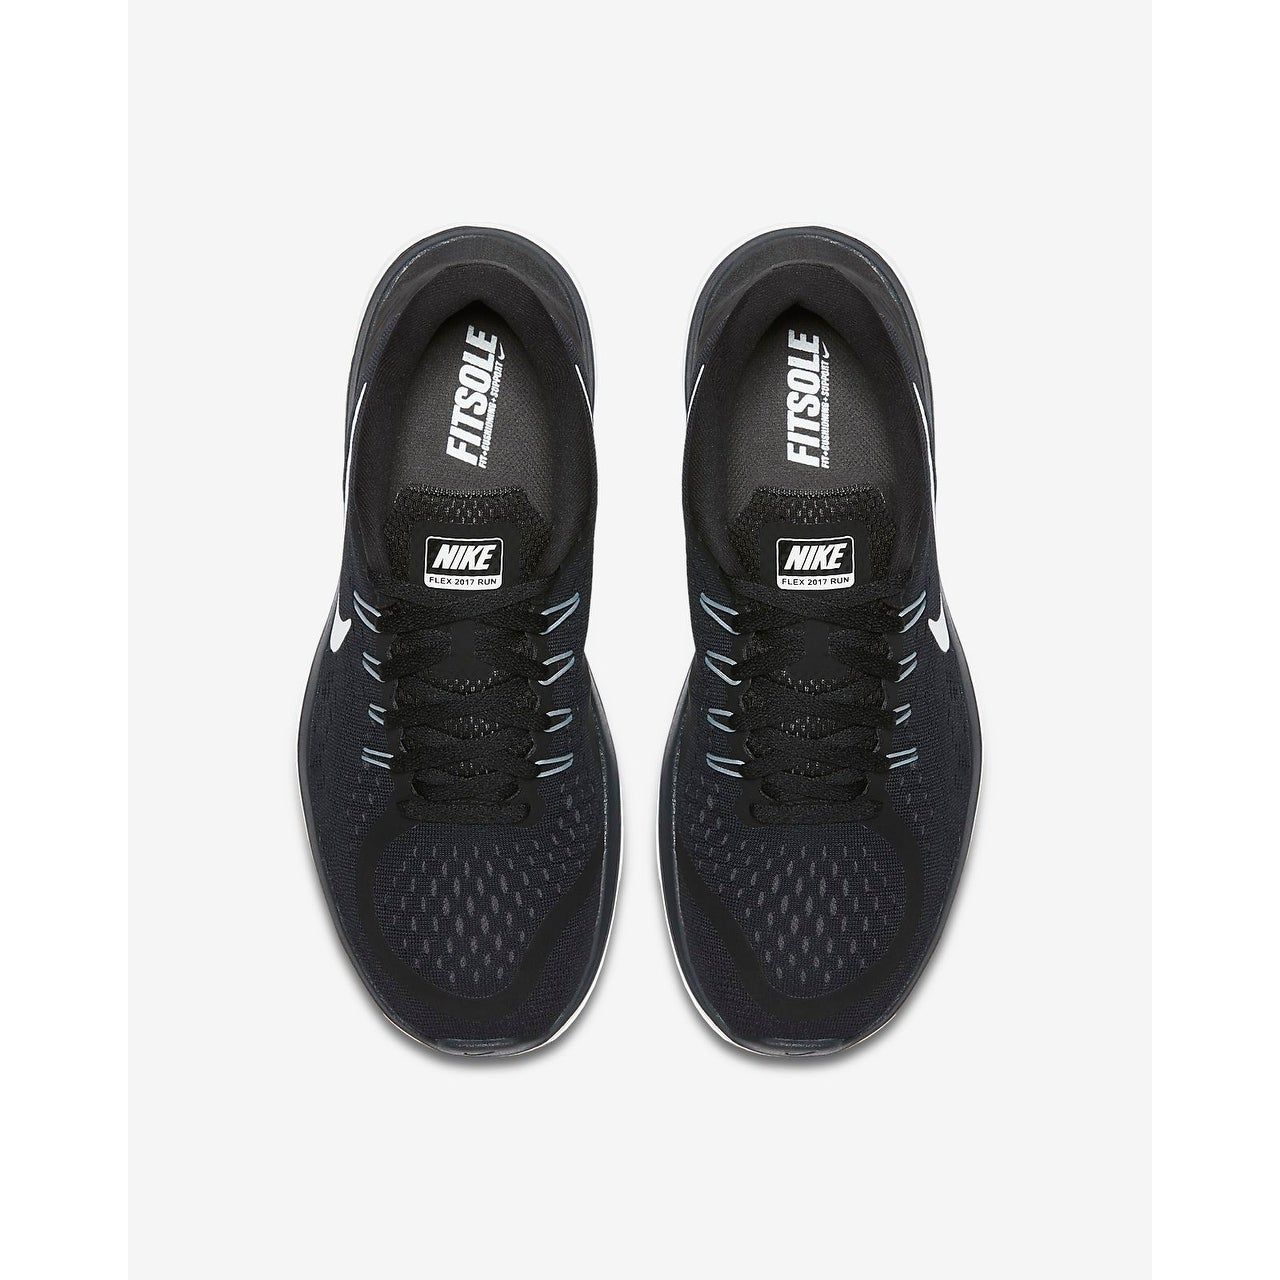 bc0f069b1767 Shop Nike Womens Nike flex 2017 RN Fabric Low Top Lace Up Running Sneaker -  Free Shipping Today - Overstock - 22413187